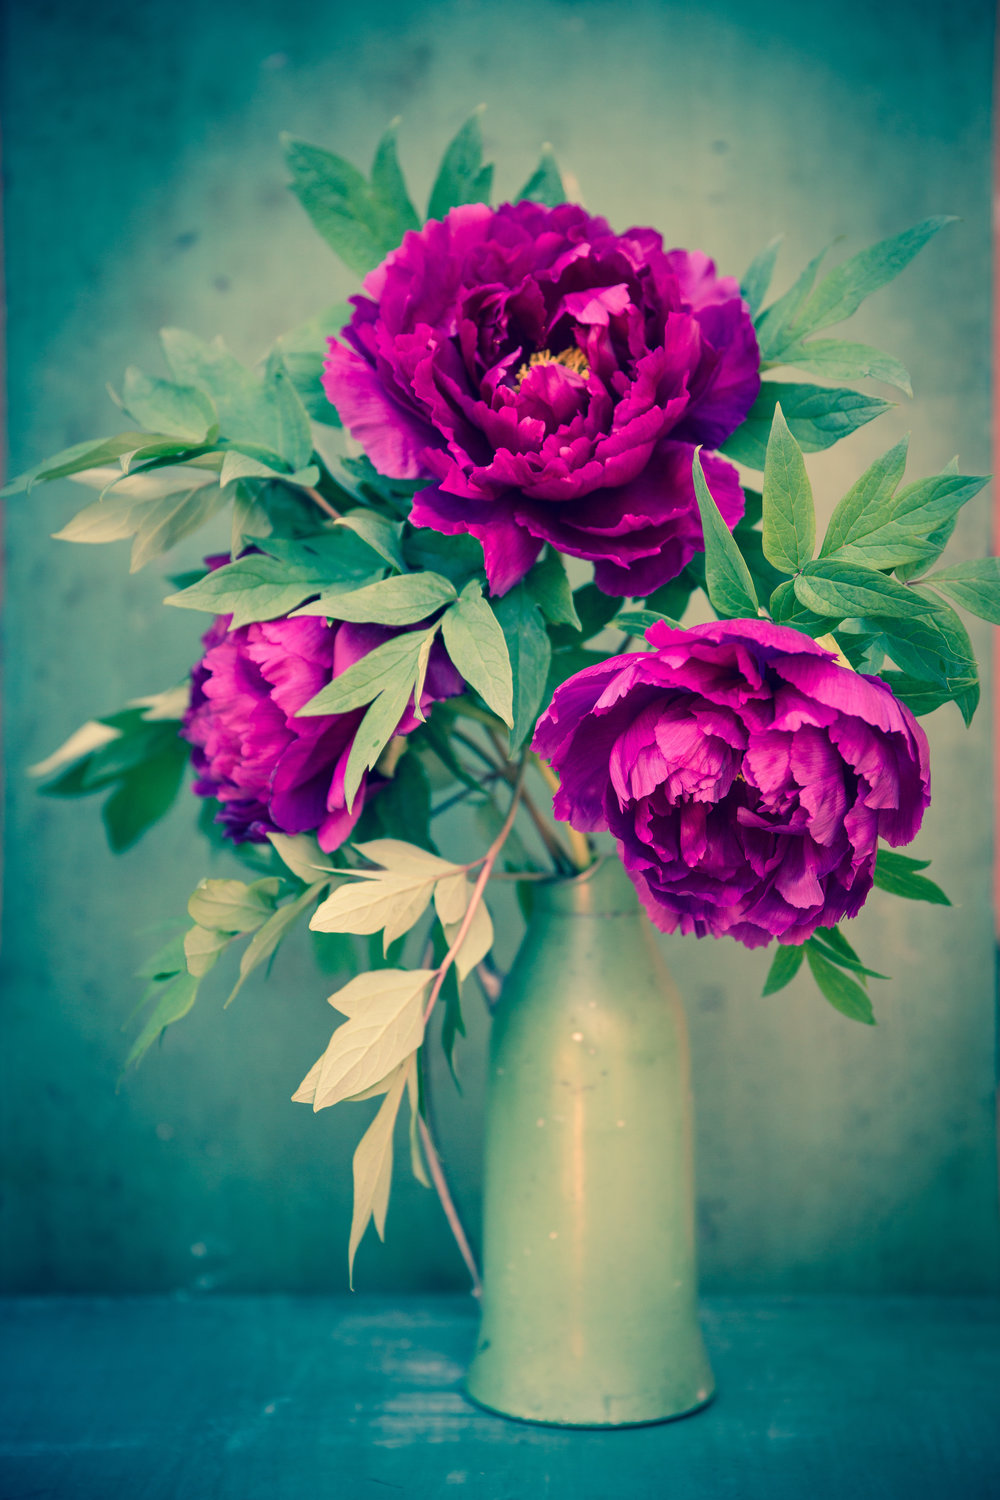 "Asia Kepka ,  Peony , archival inkjet print, mounted on wood with epoxy finish, 14"" x 11"", $275"